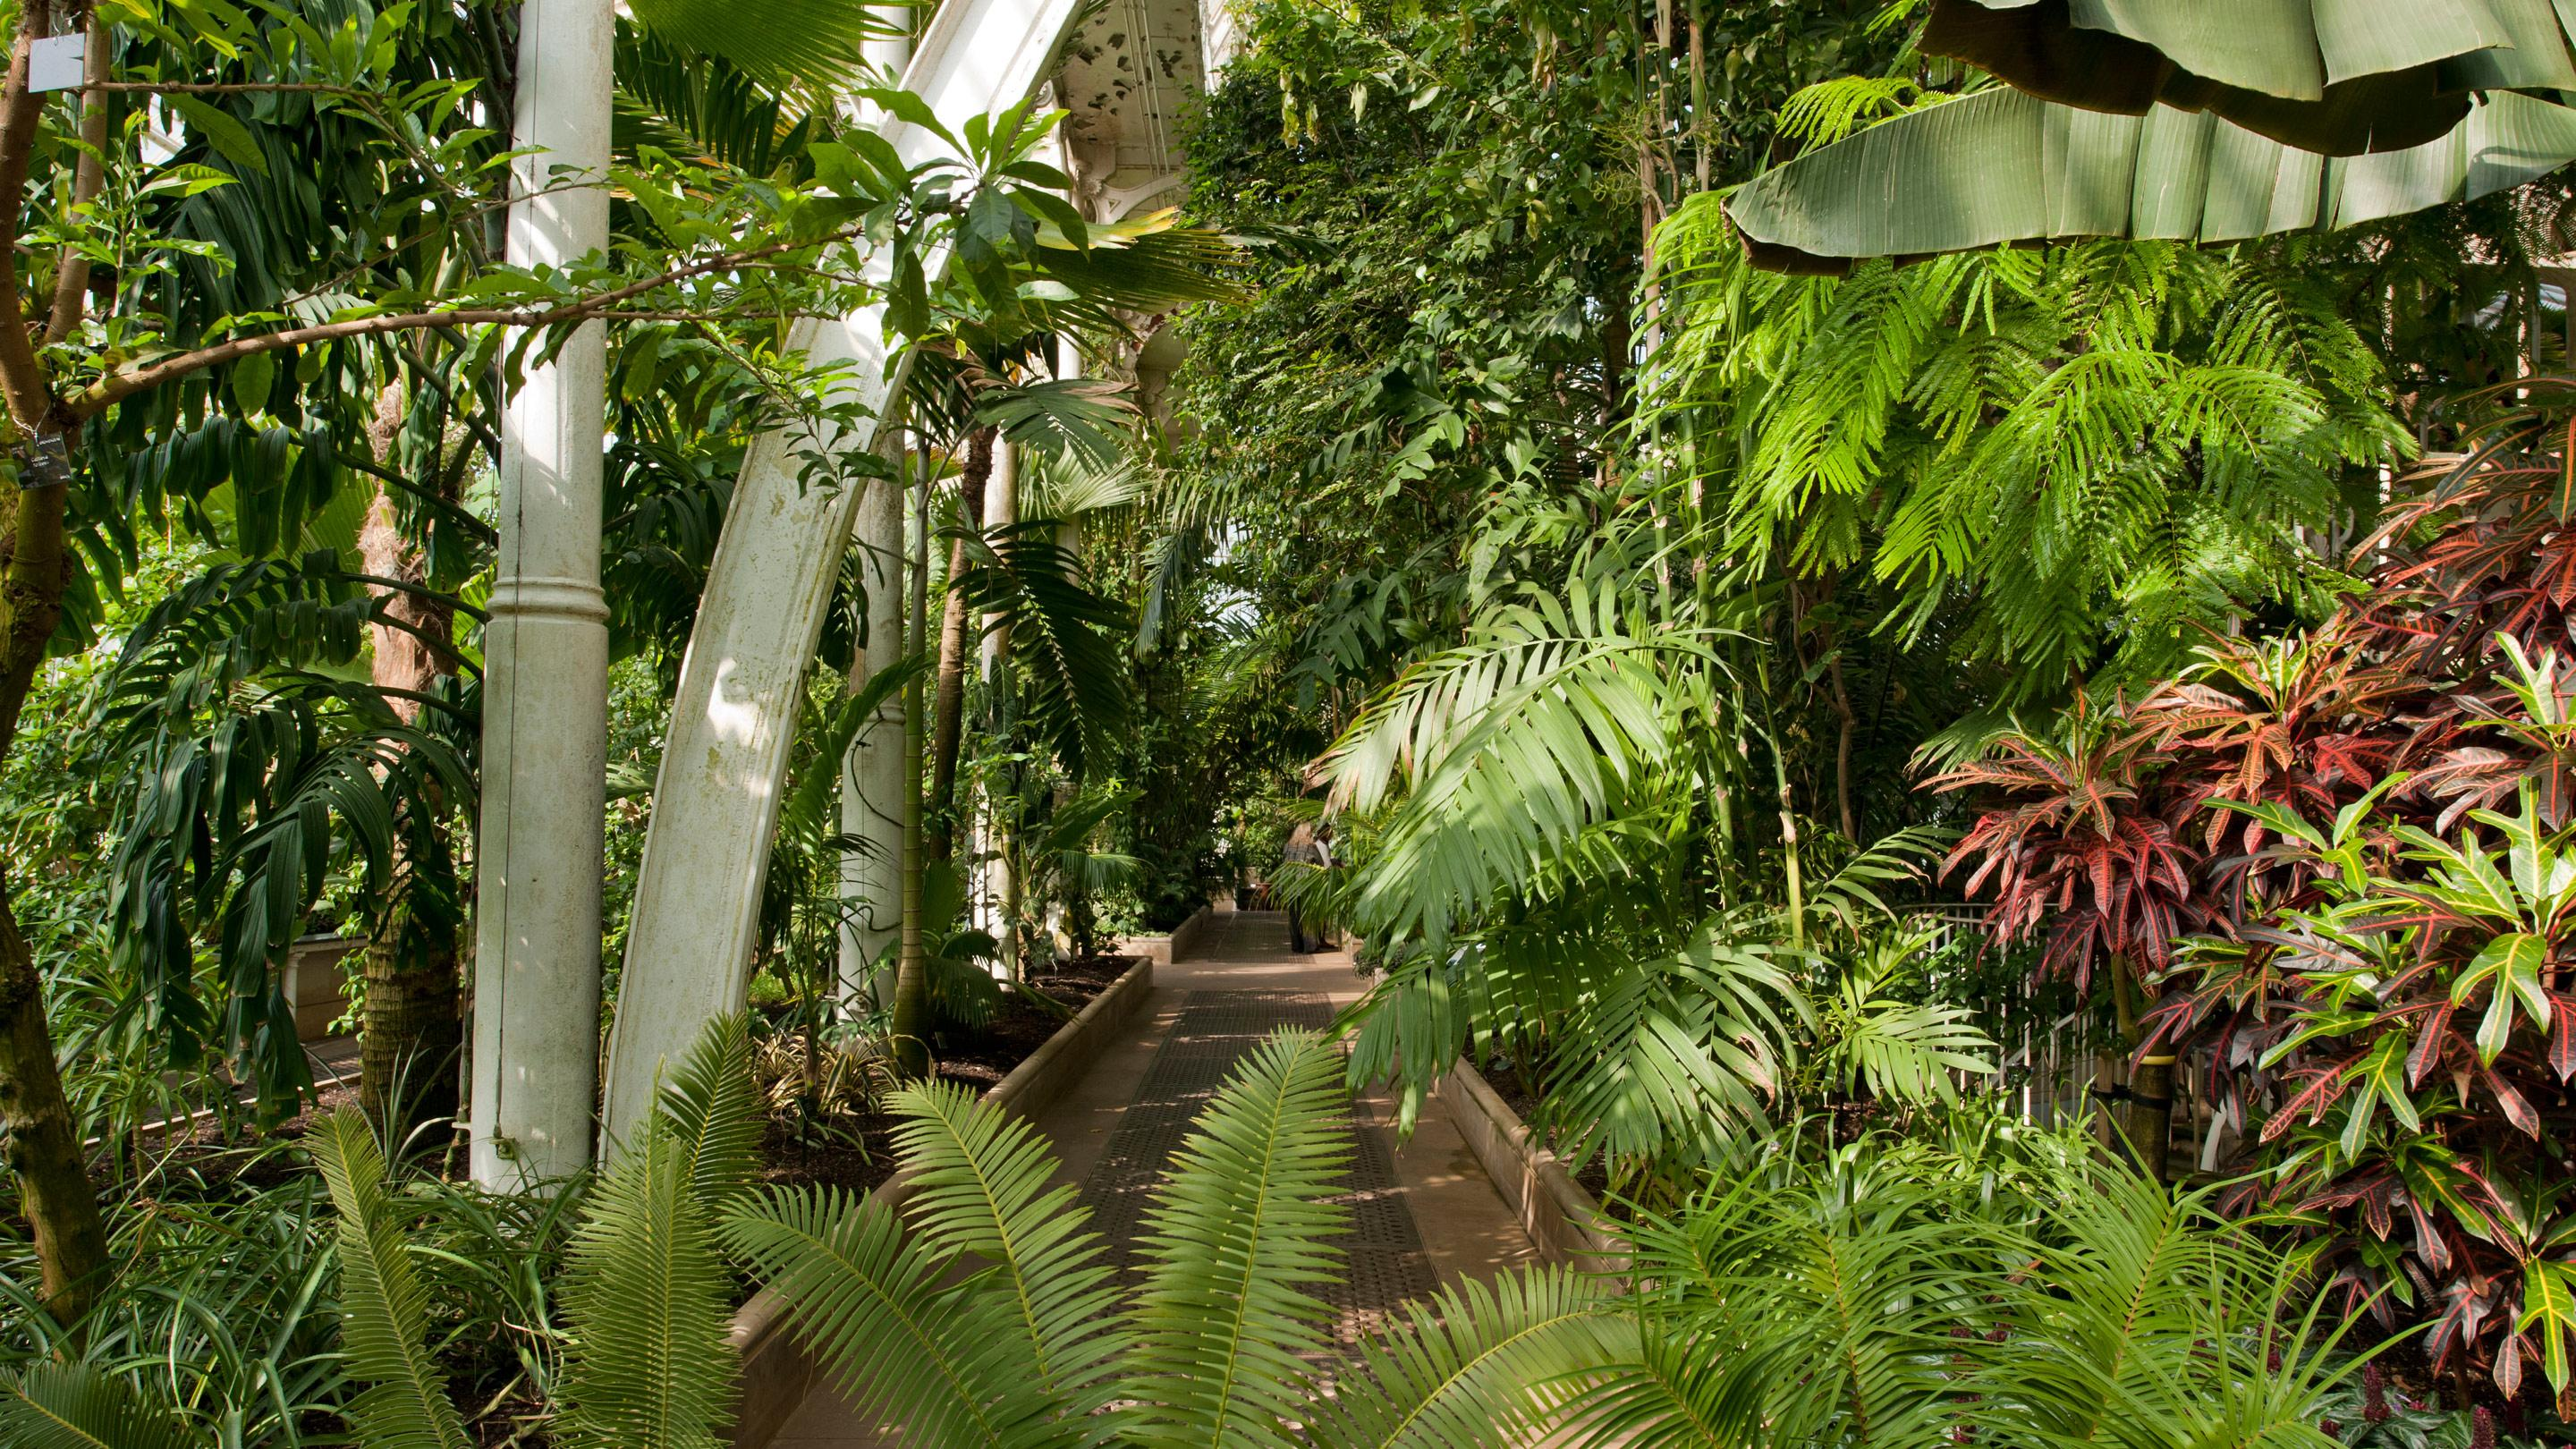 Inside Kew's Palm House